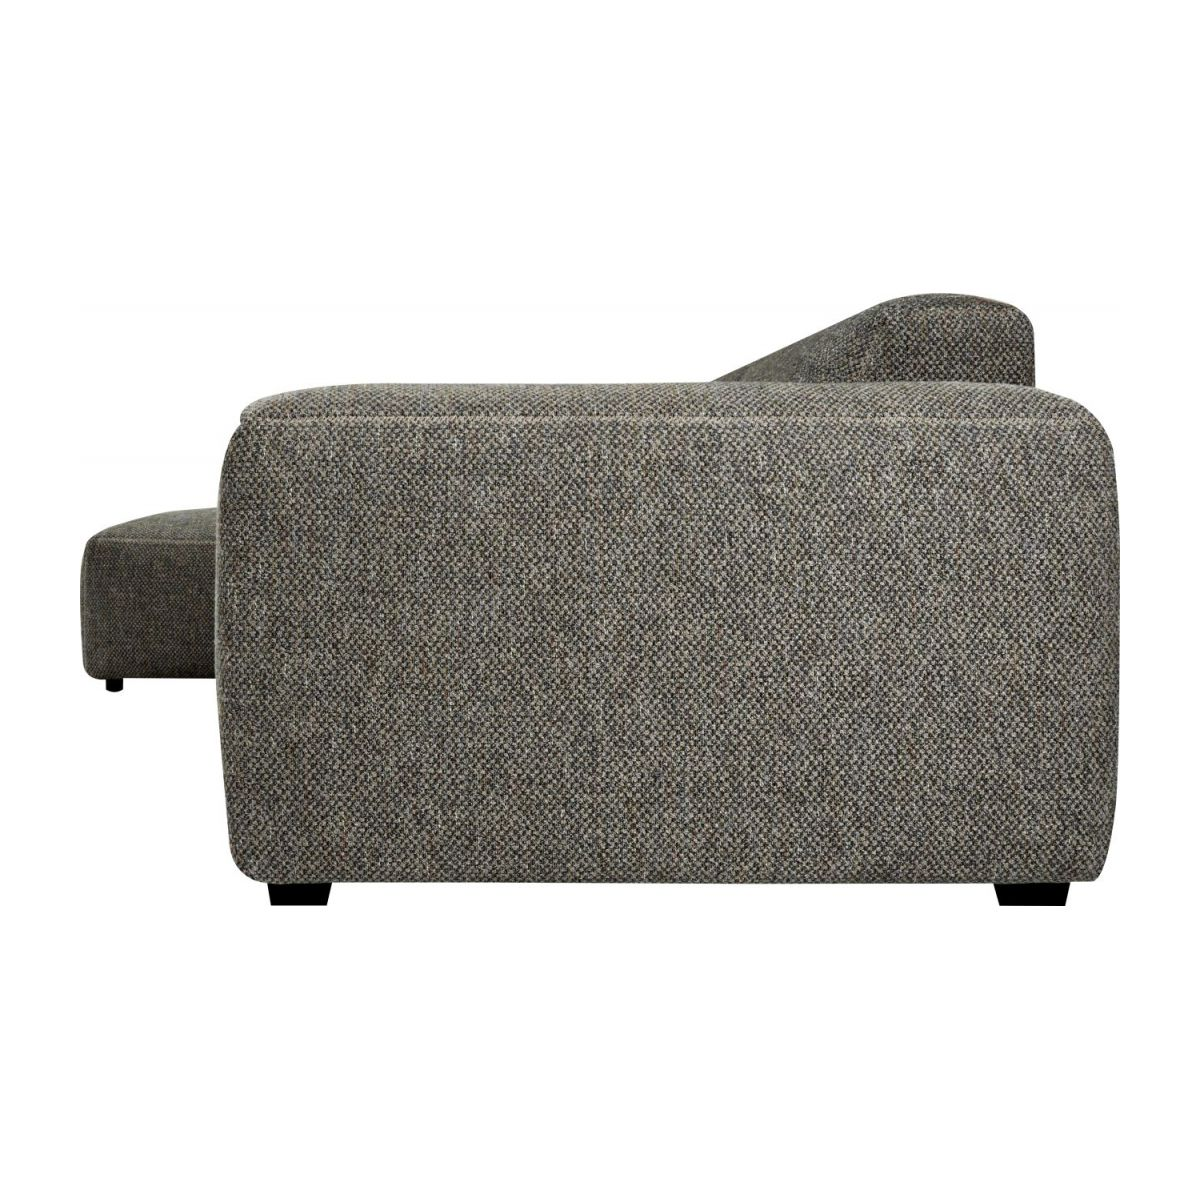 4-seter sofa, sort n°5